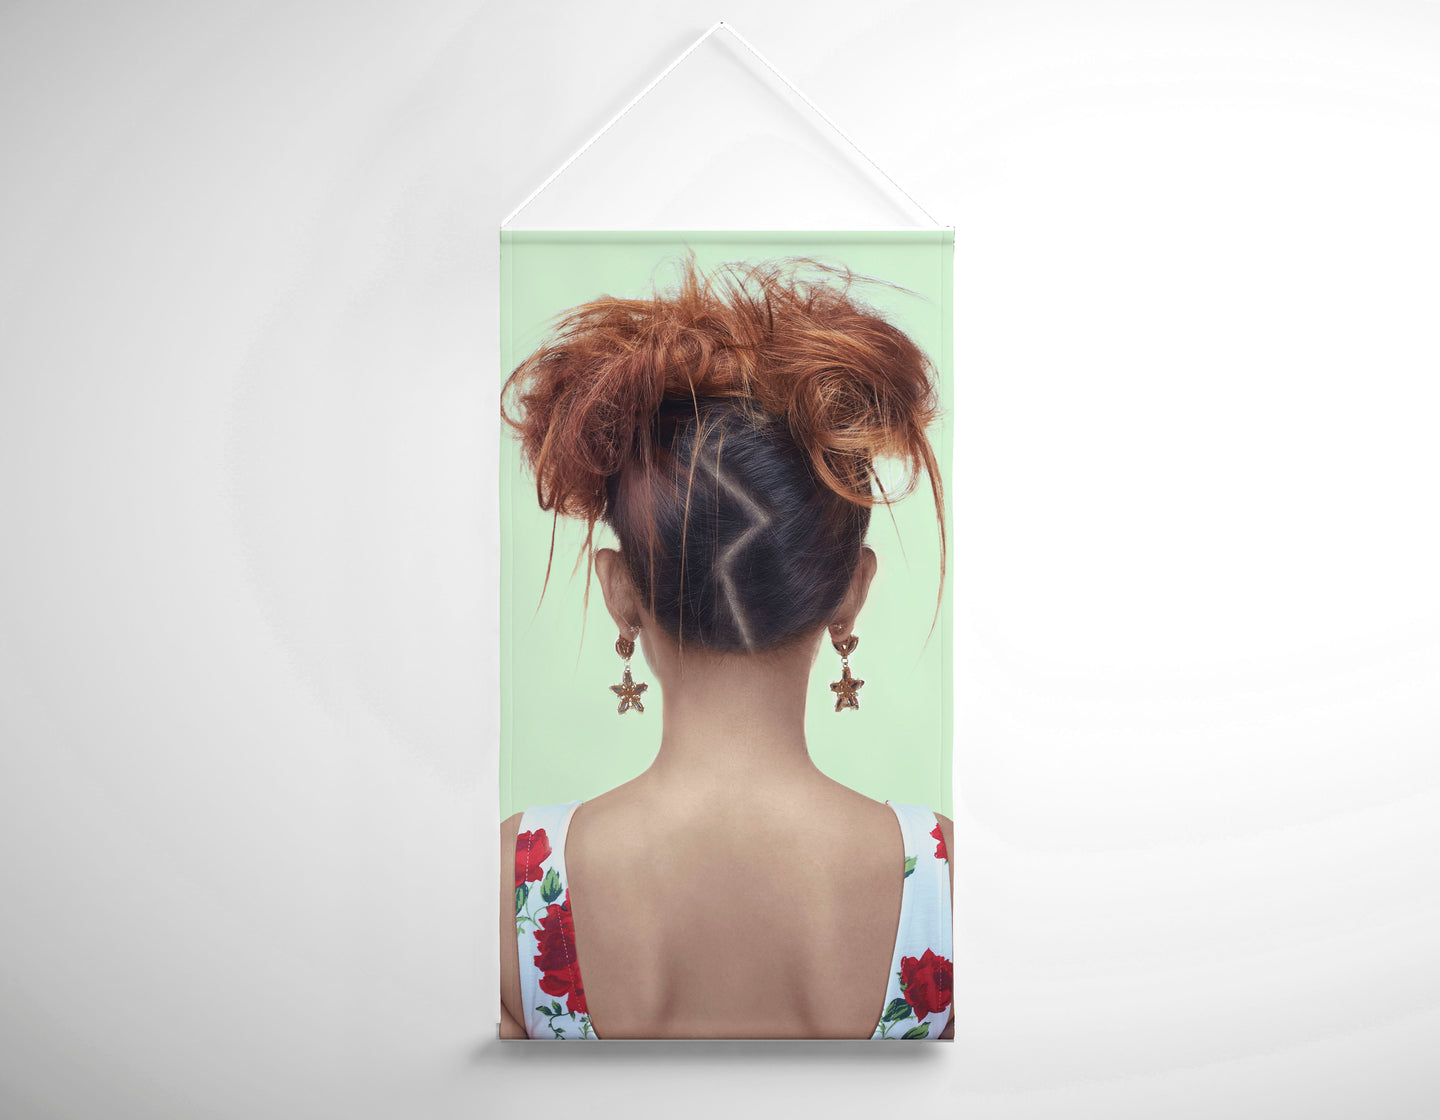 Salon Banner - Woman in High Topknot with Slight Messy Tease